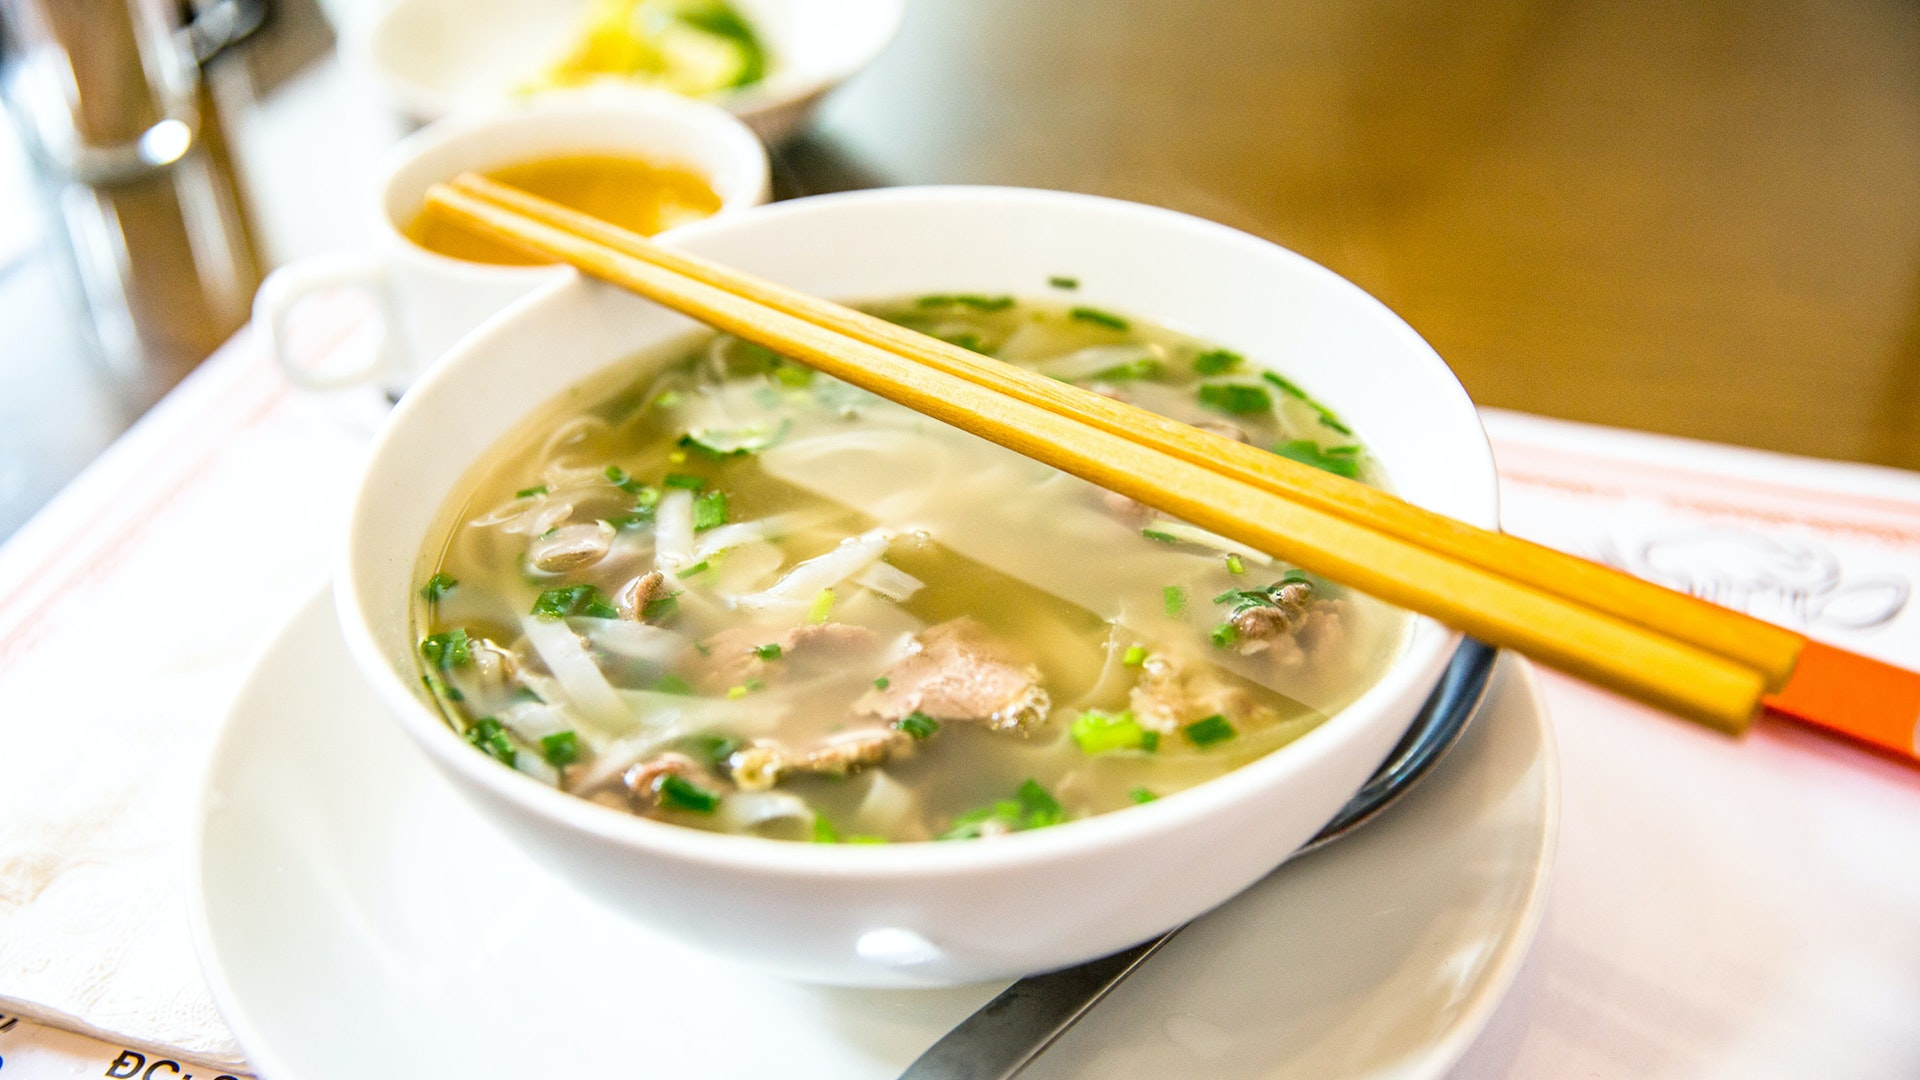 Pho is one of Vietnam's most well-known dishes.